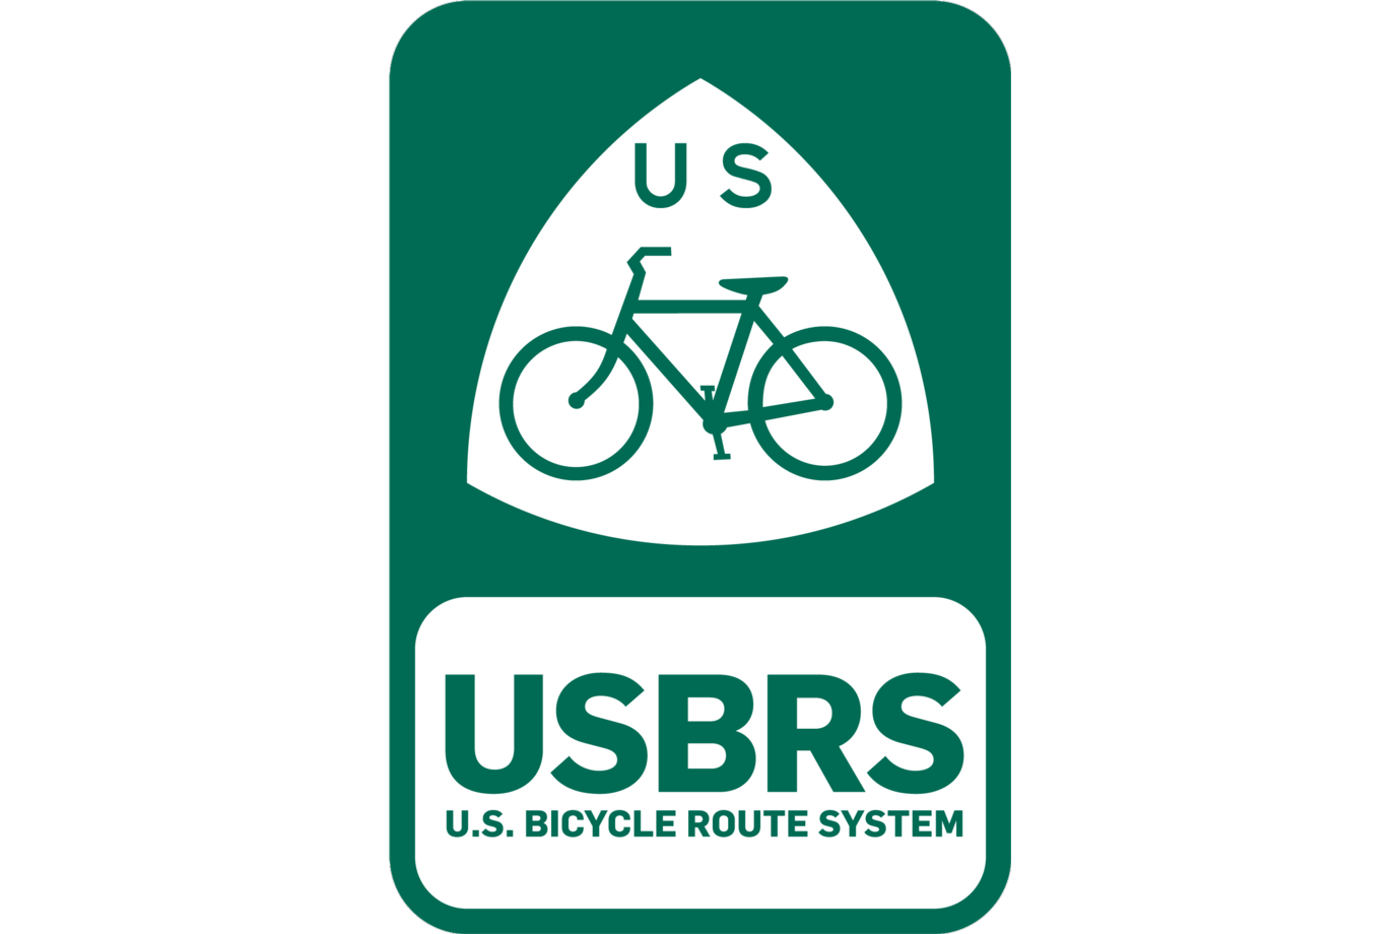 Adventure Cycling: U.S. Bicycle Route System Adds New Routes in 4 States